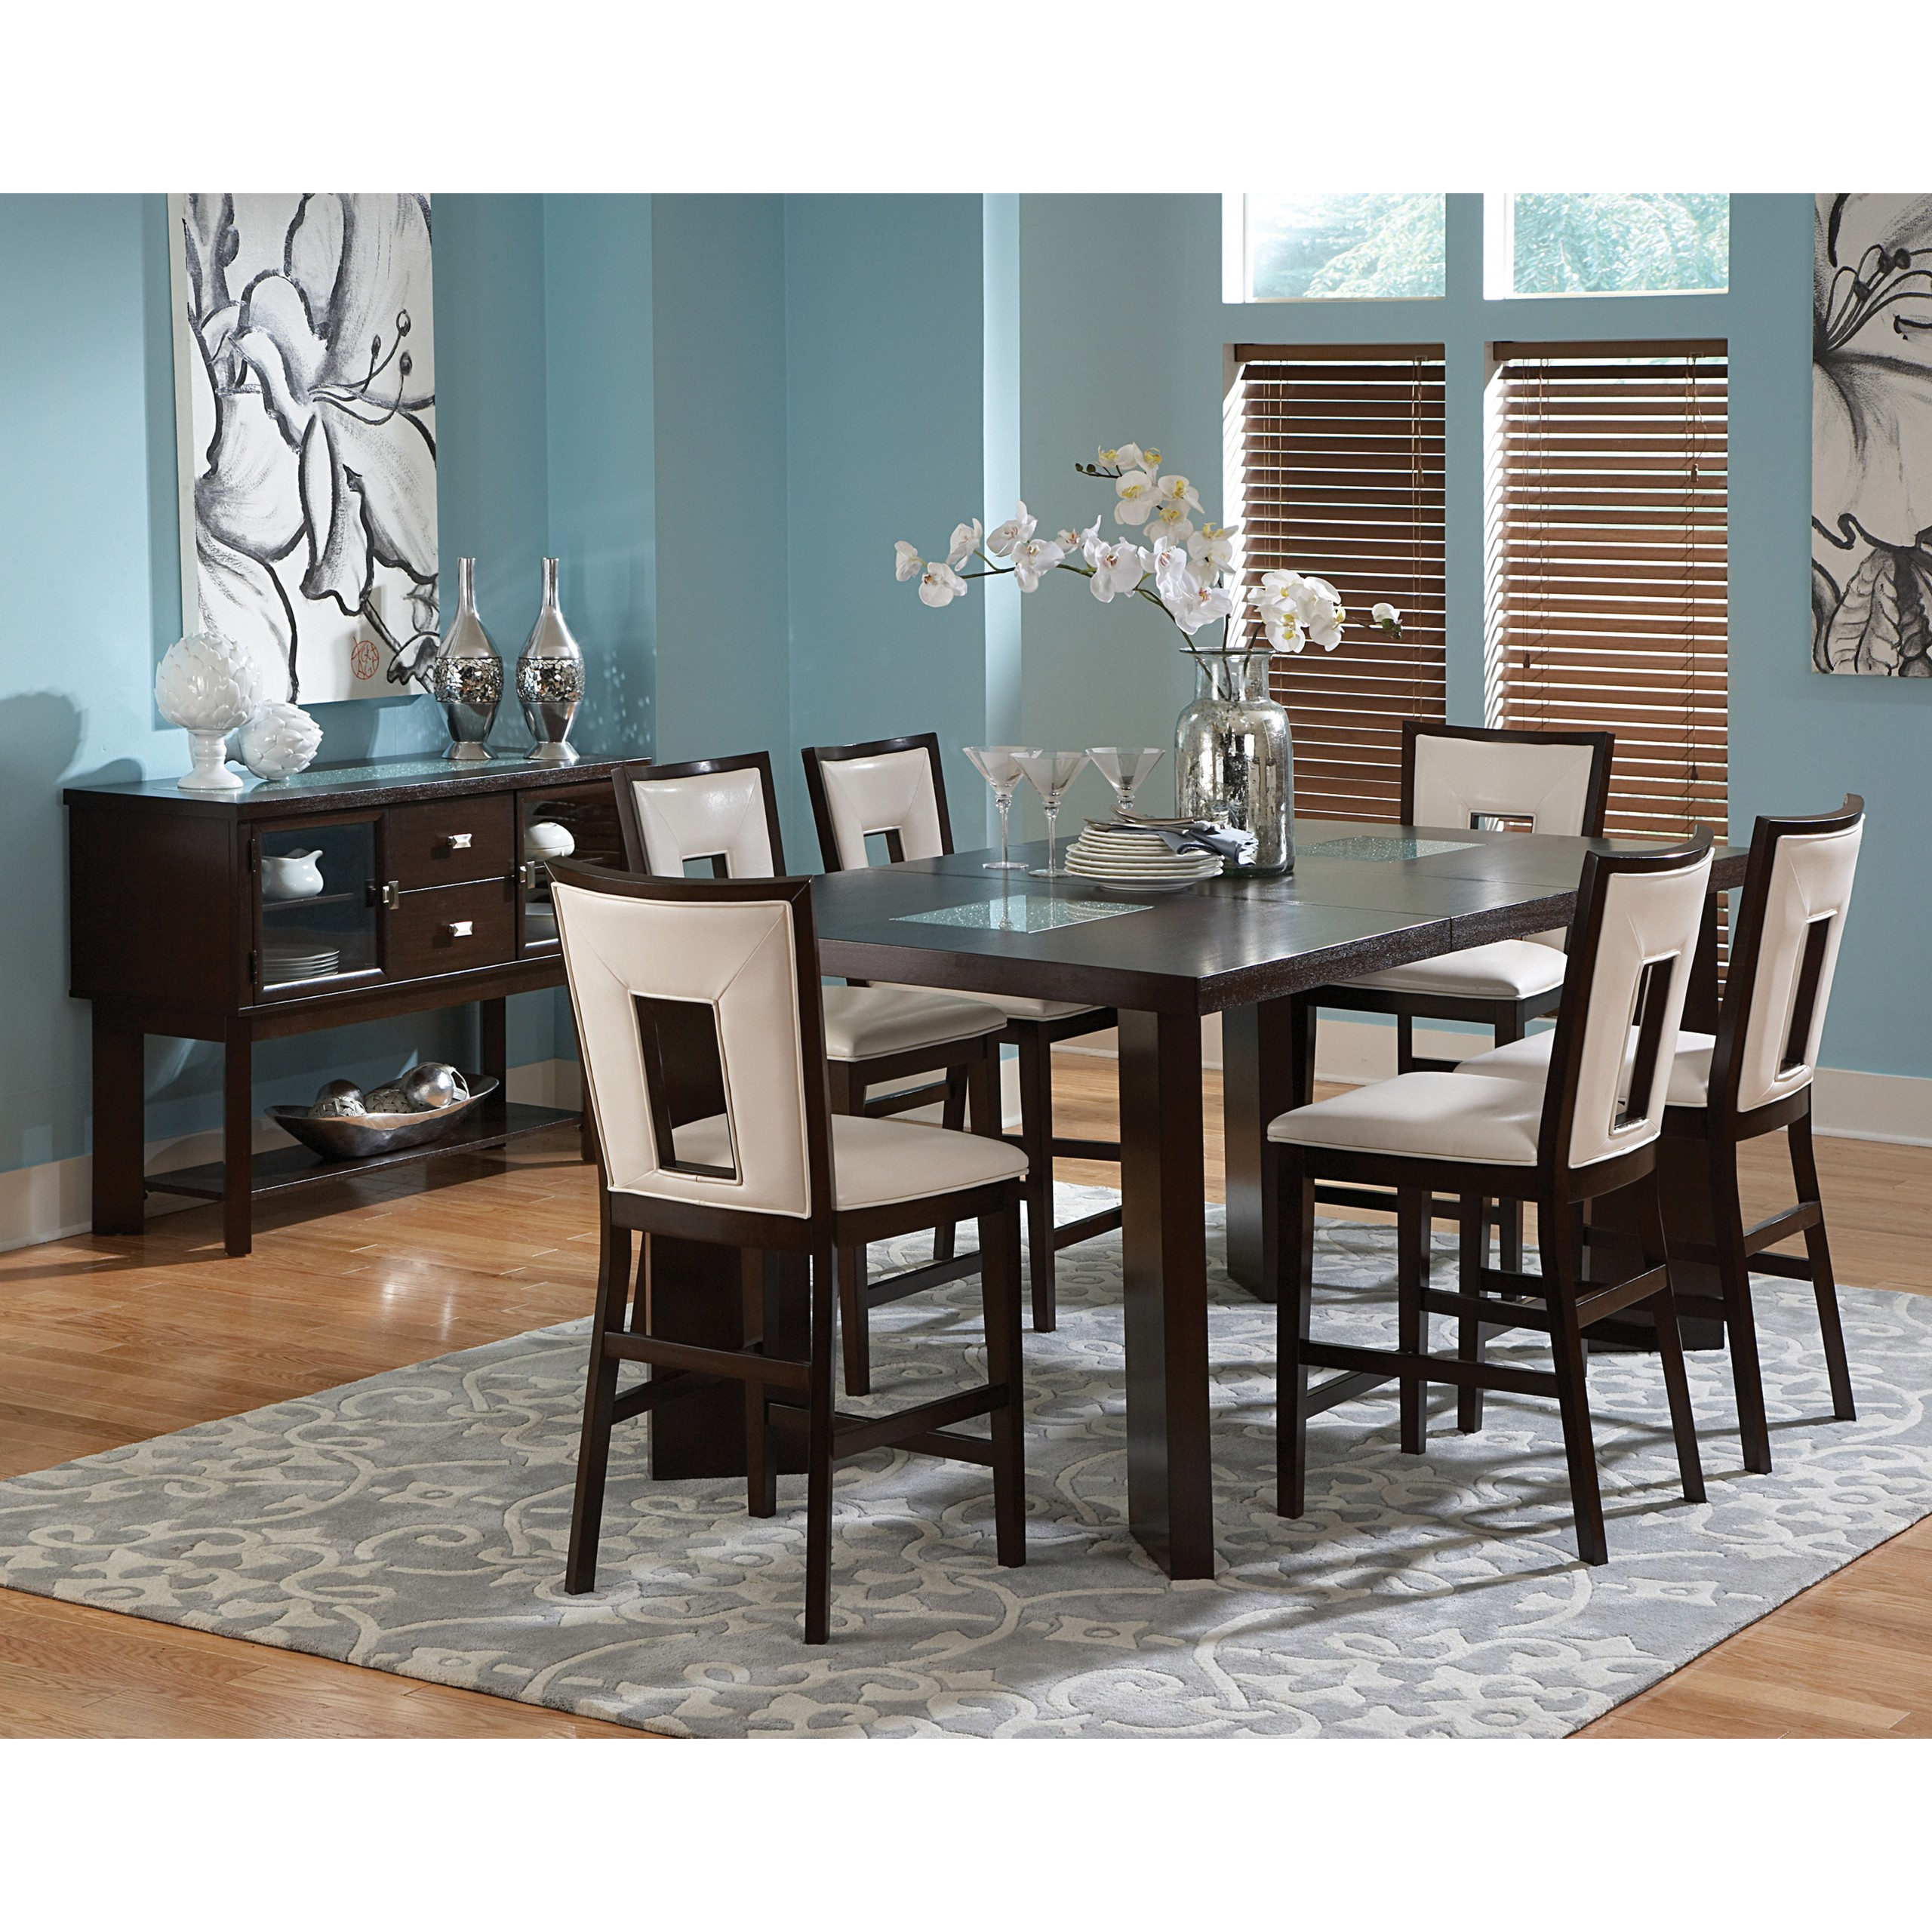 Unique Dining Set